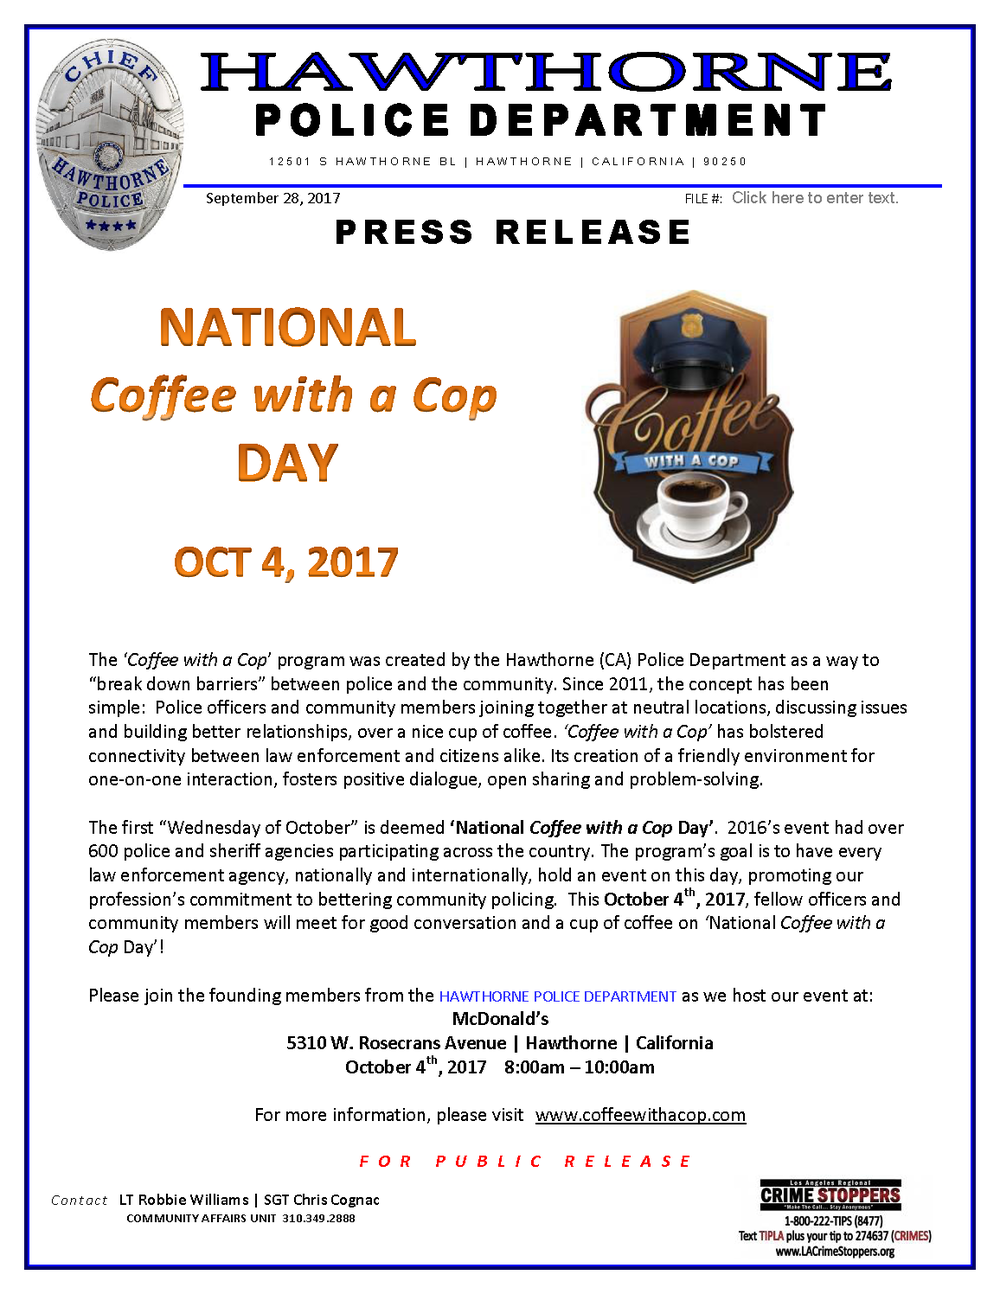 Press Release_Nat'l Coffee with a Cop Day 2017 (1)_Page_1.png